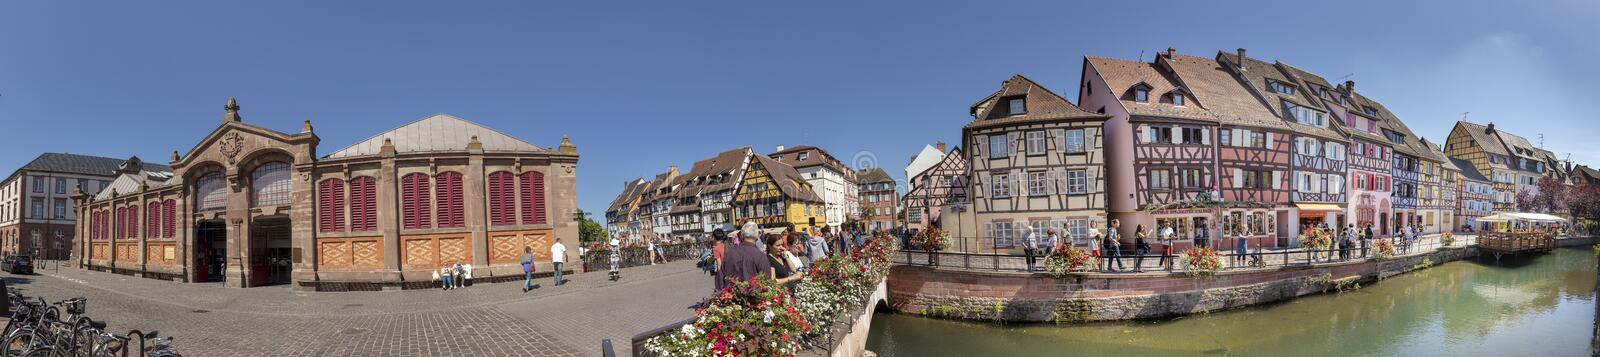 people visit the area little venice with traditional buildings in the old town of Colmar stock images